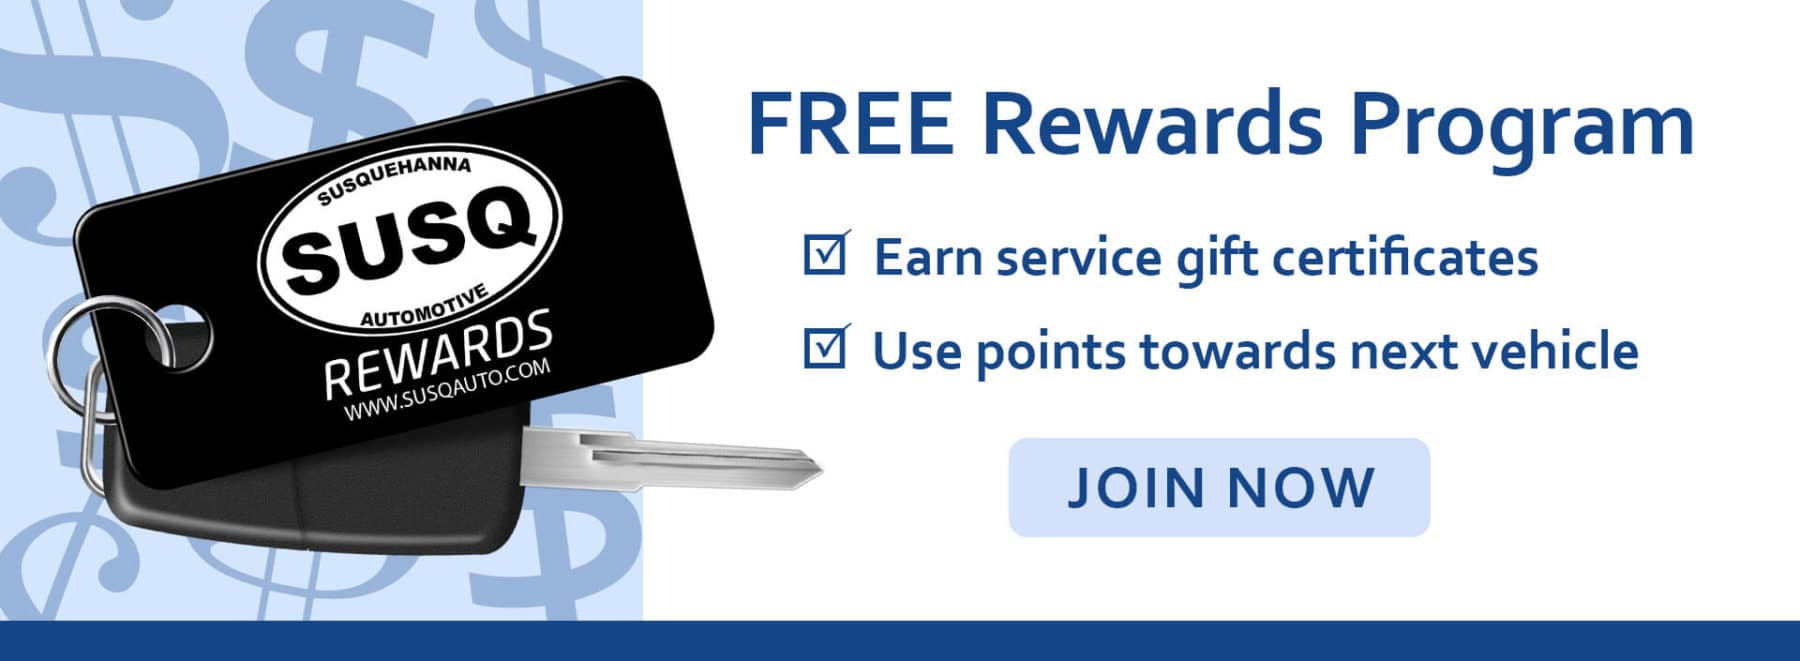 Join our free rewards program! Earn points towards your next car purchase and extra service gift certificates.